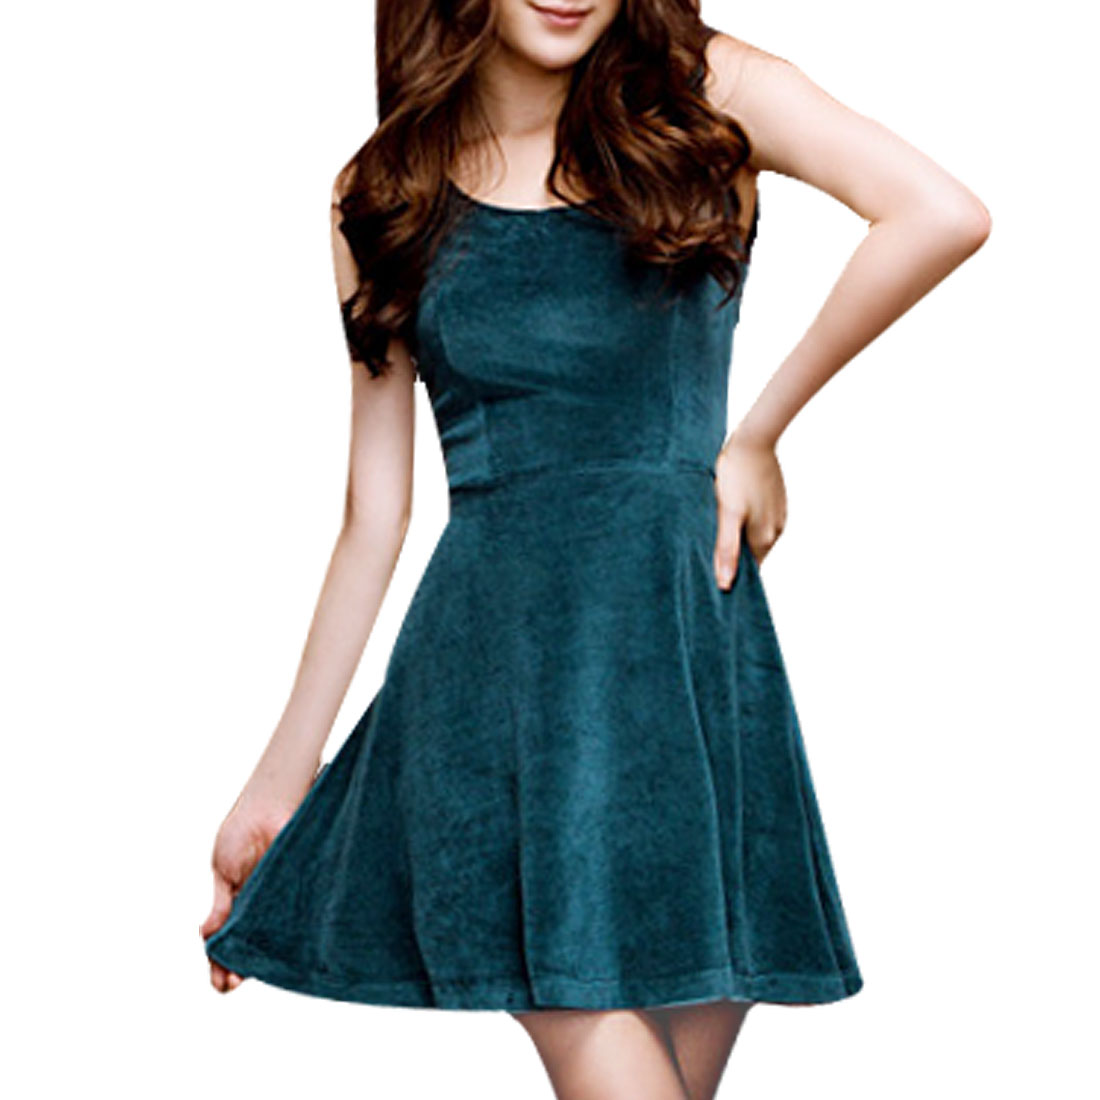 Charming Round Neck Sheath Waist Mini Tank Dress Teal Green XS for Ladies